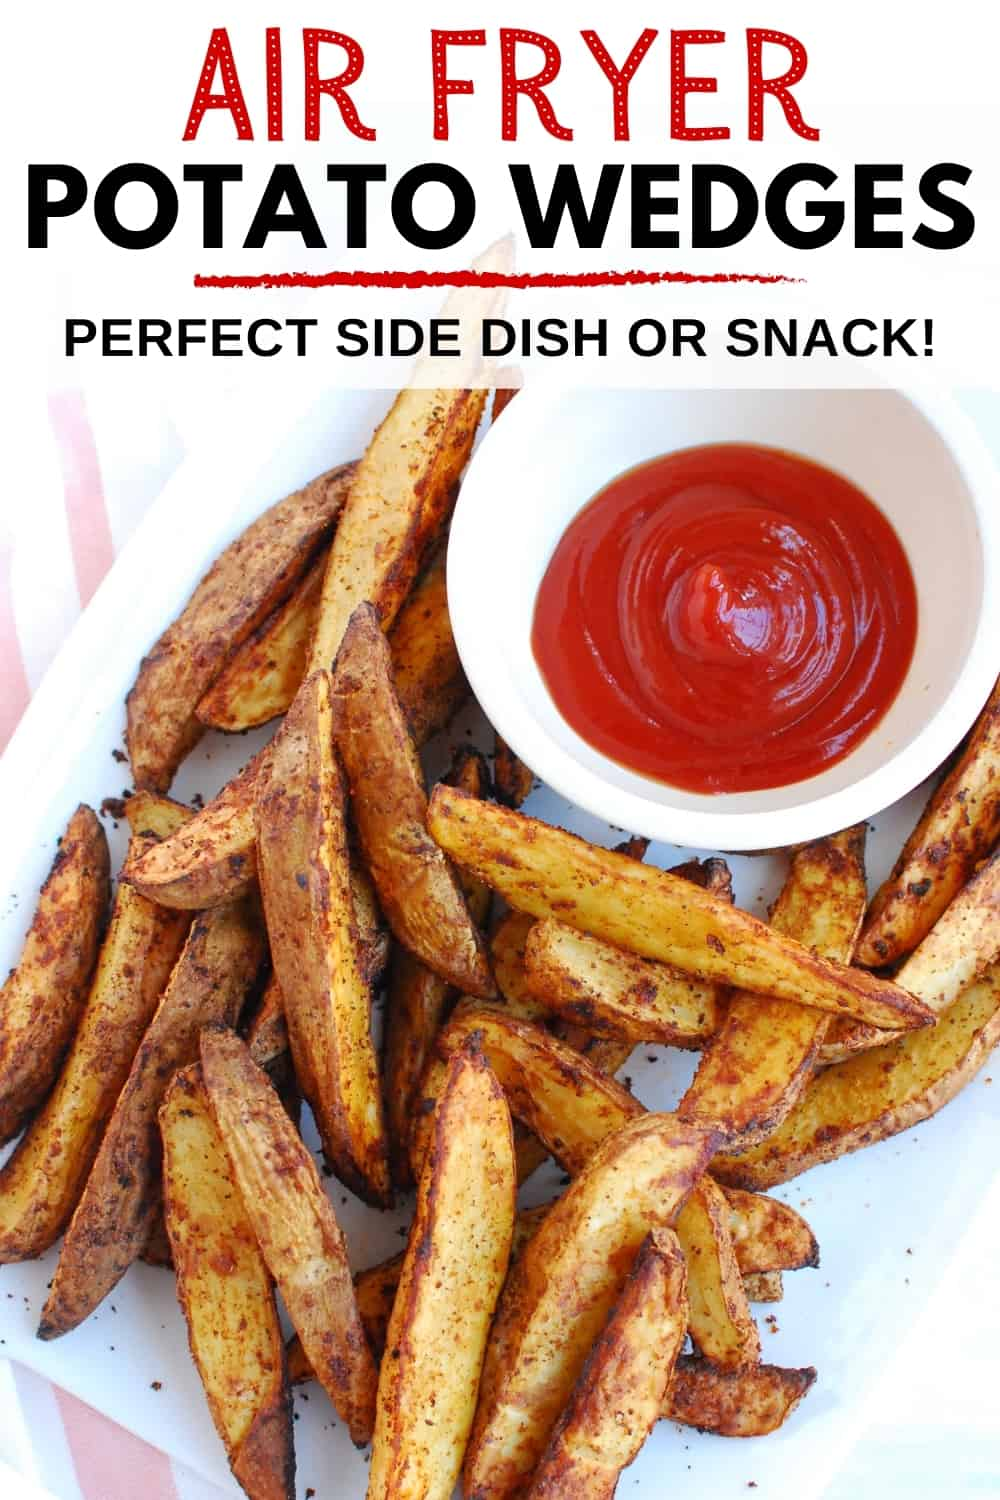 An overhead shot of air fryer potato wedges on a white plate with a small bowl of ketchup.